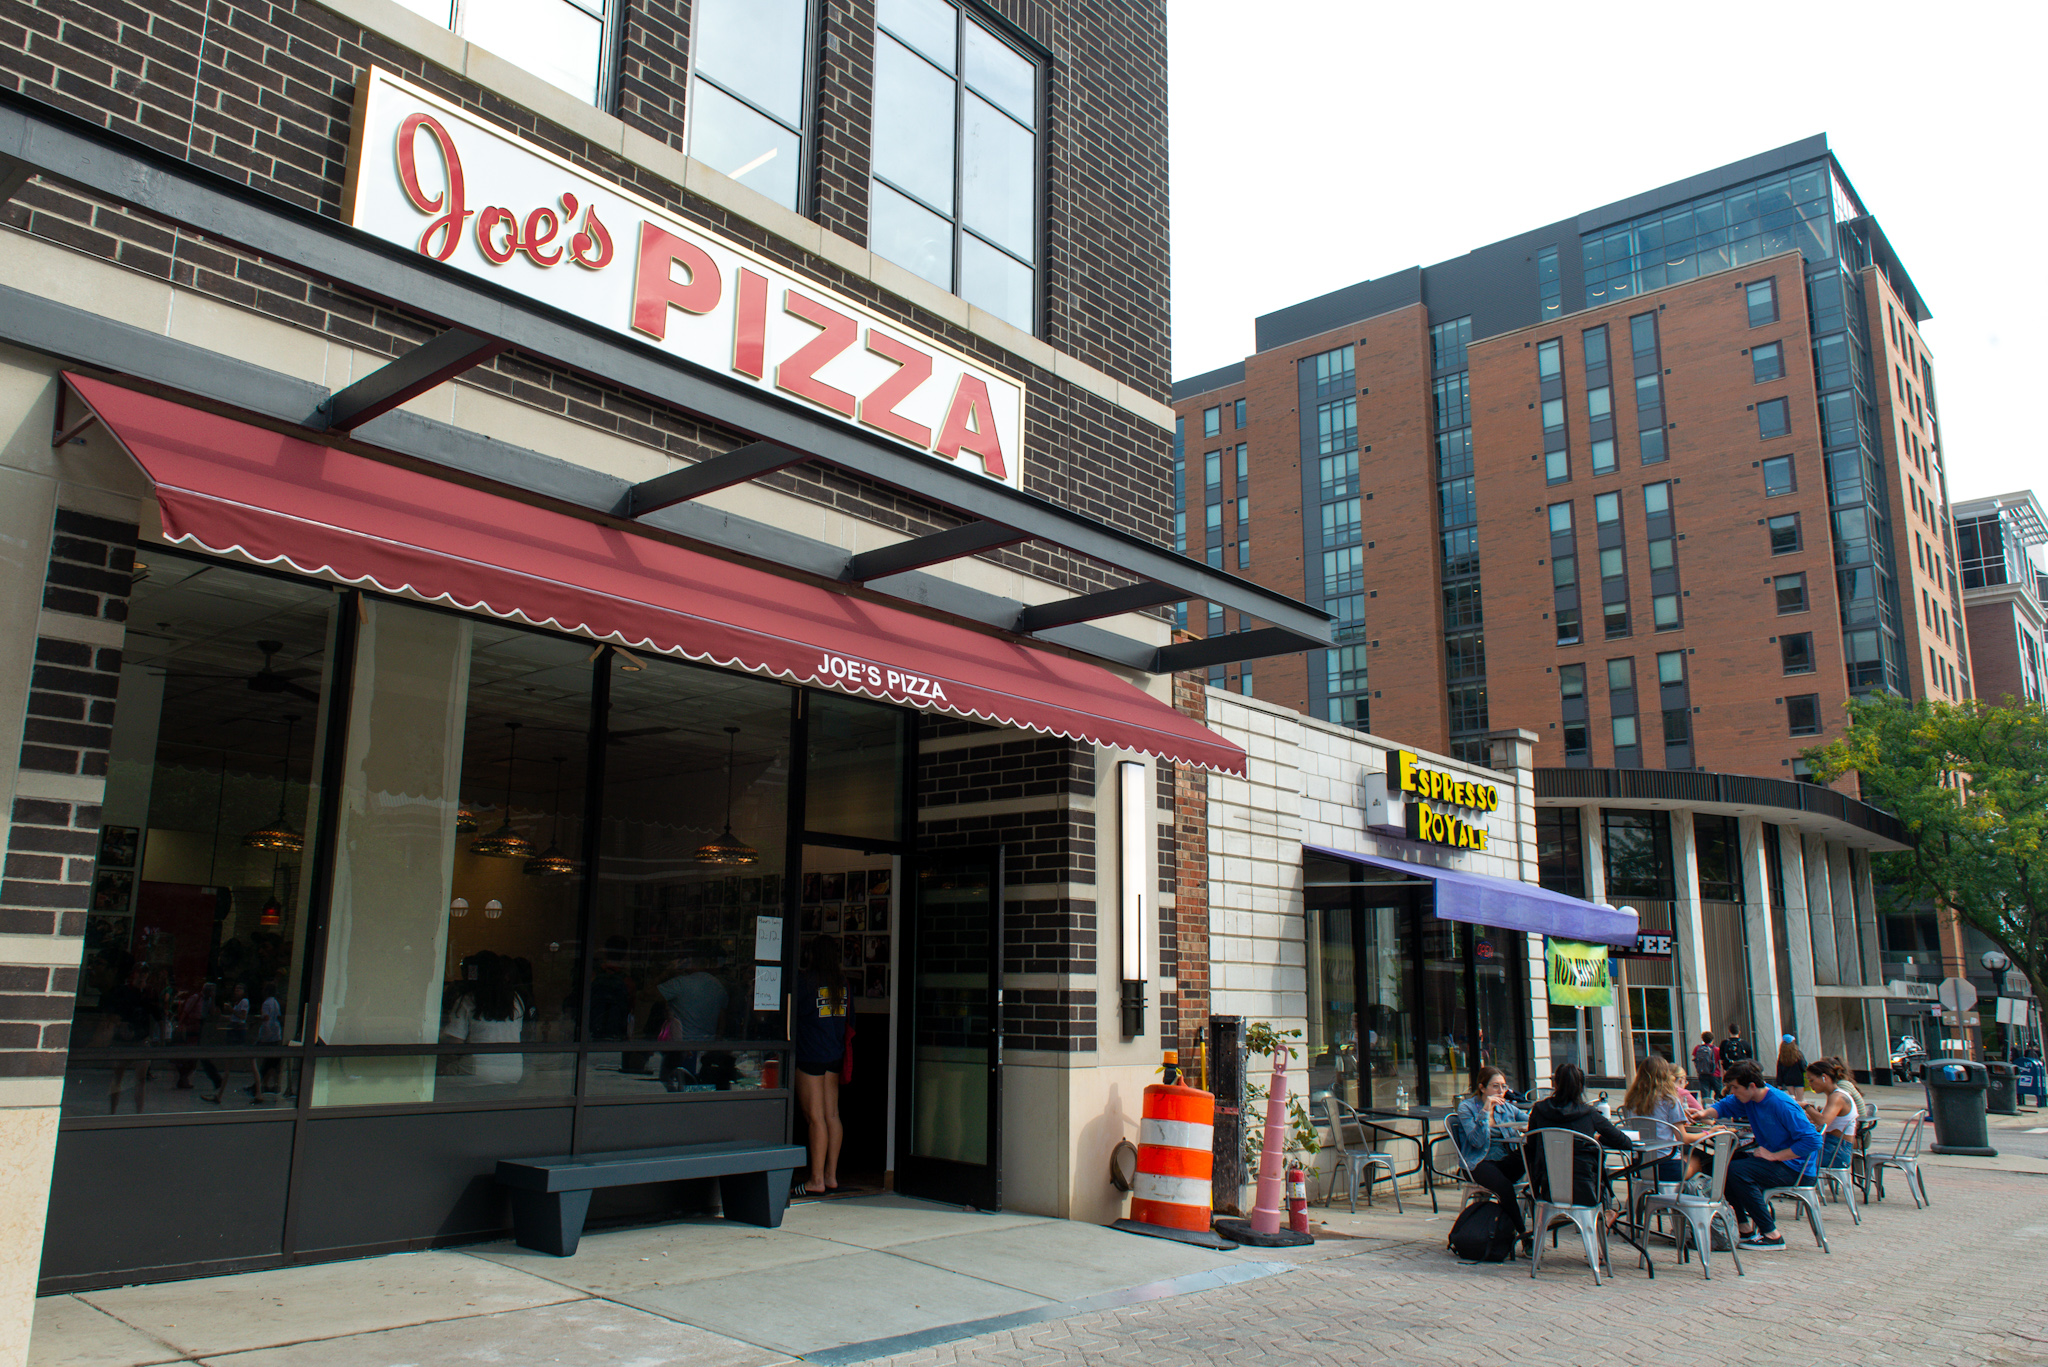 Joe's Pizza opens first non-New York location in Ann Arbor